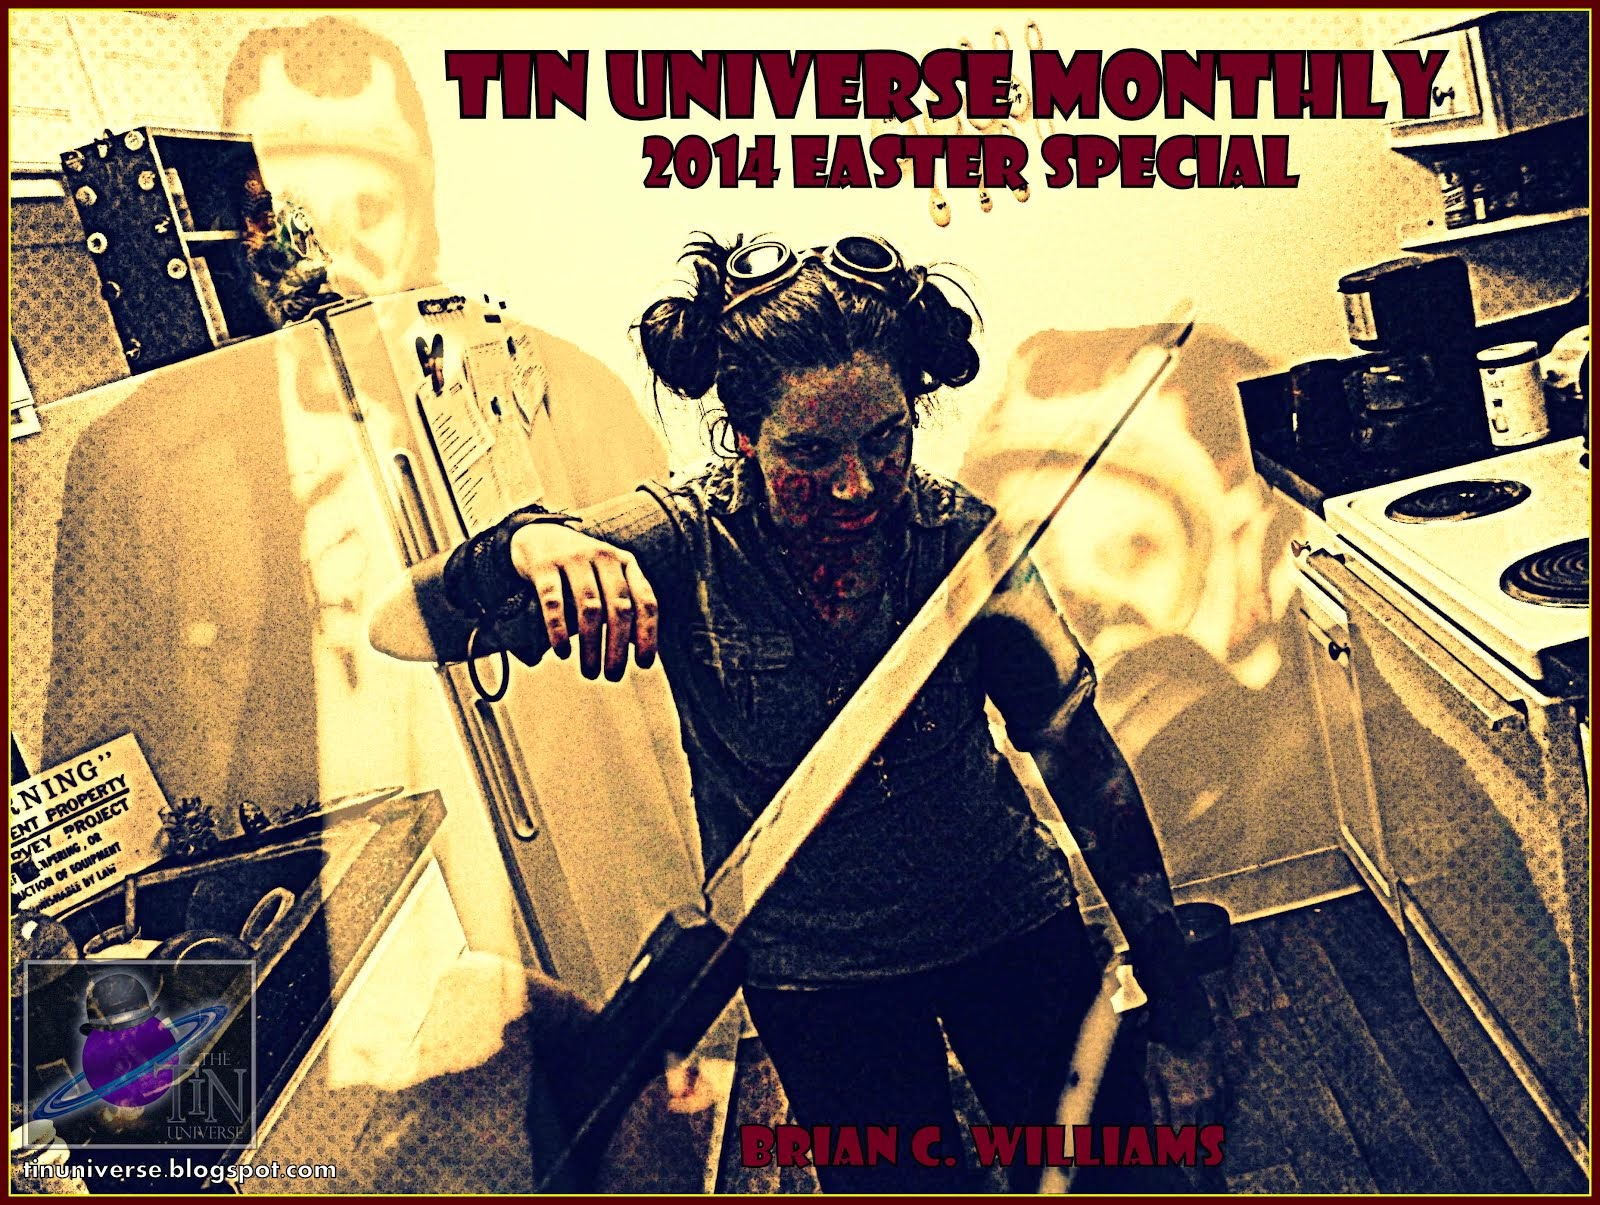 Tin Universe Monthly 2014 Easter Special